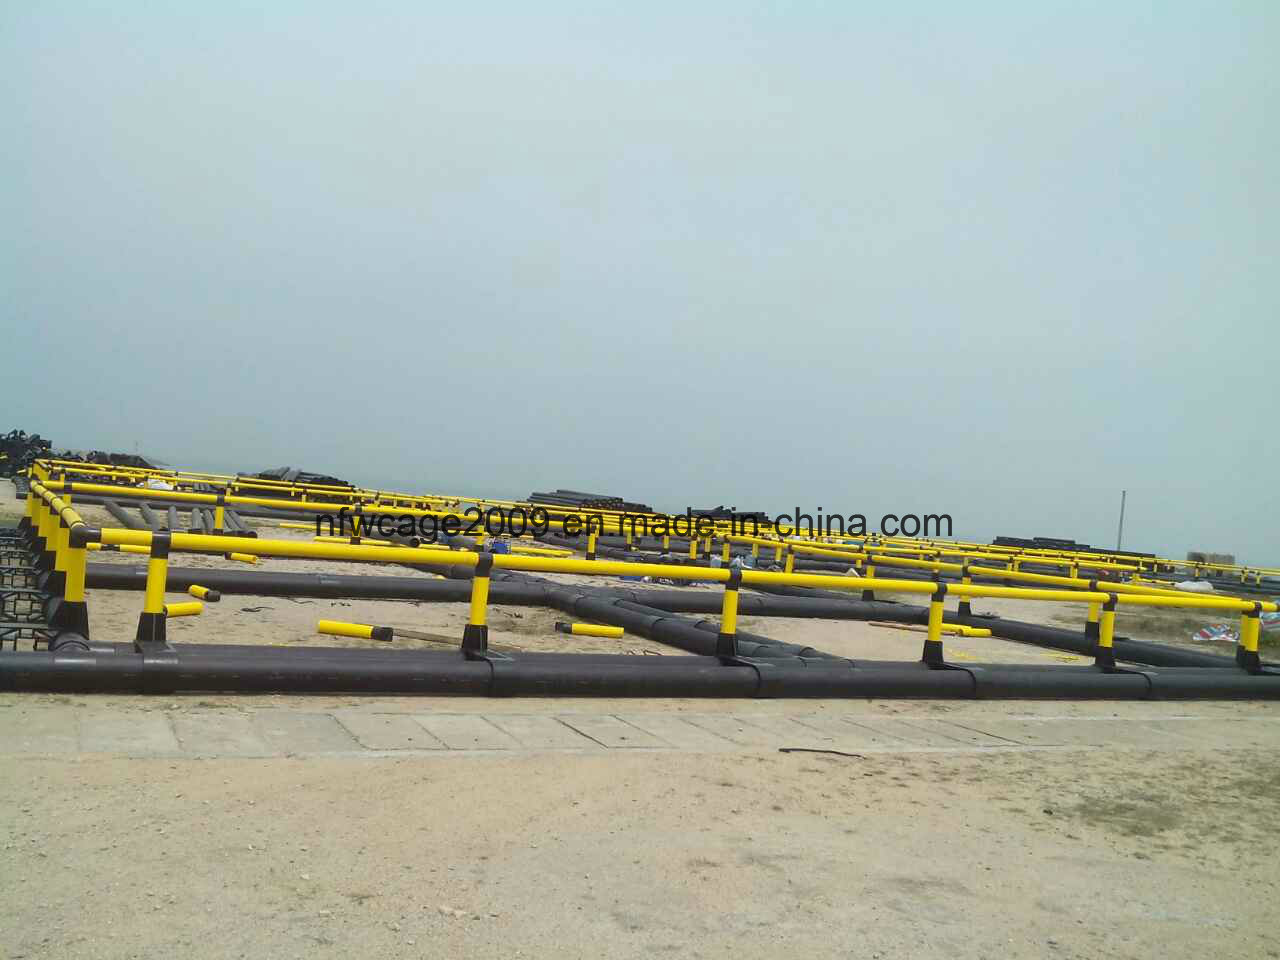 High Quality Storm and Wave Resist Square Deep Sea Floating Aquaculture Fish Farming Cages